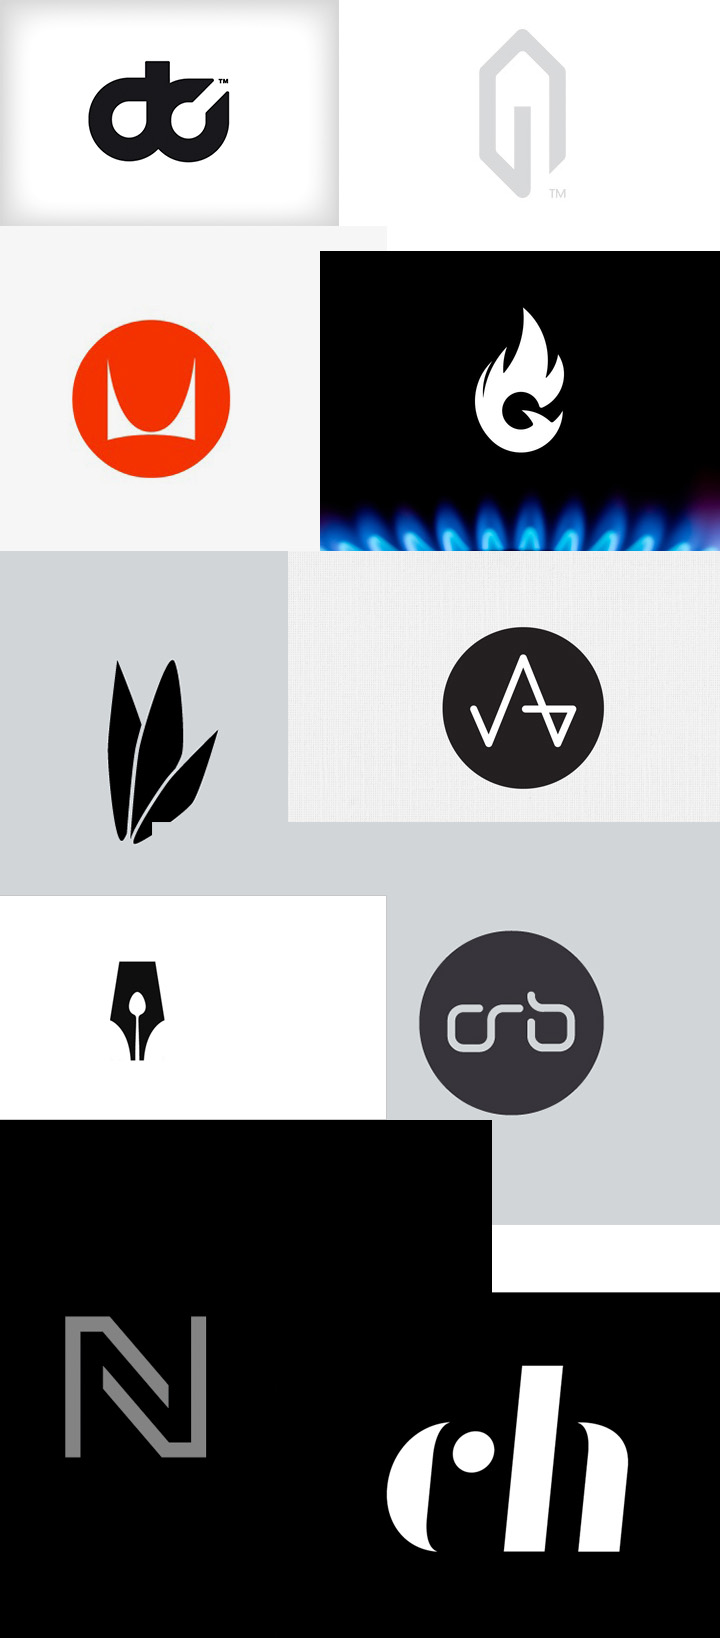 Simple Cool Logos : simple, logos, Design, Fstoppers', 00, Fstoppers